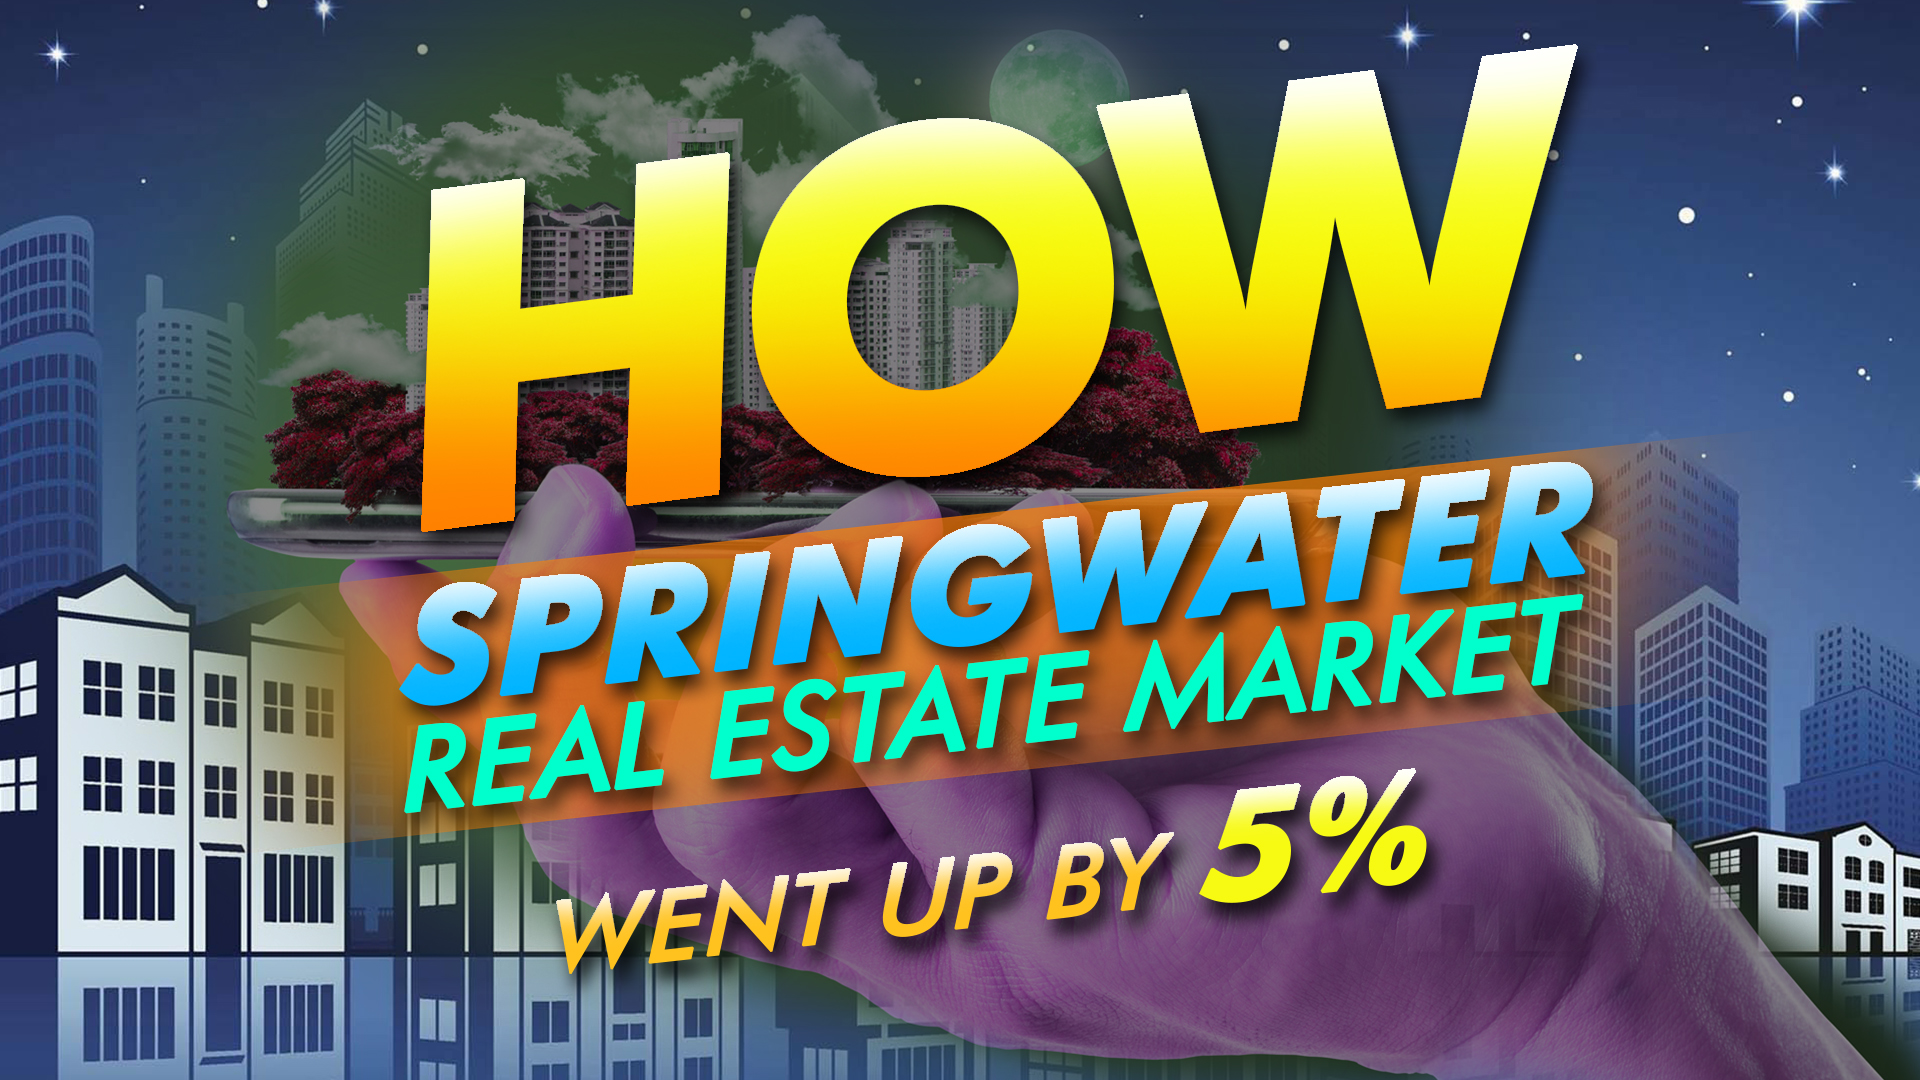 How Springwater Real Estate Market Went Up By 5%